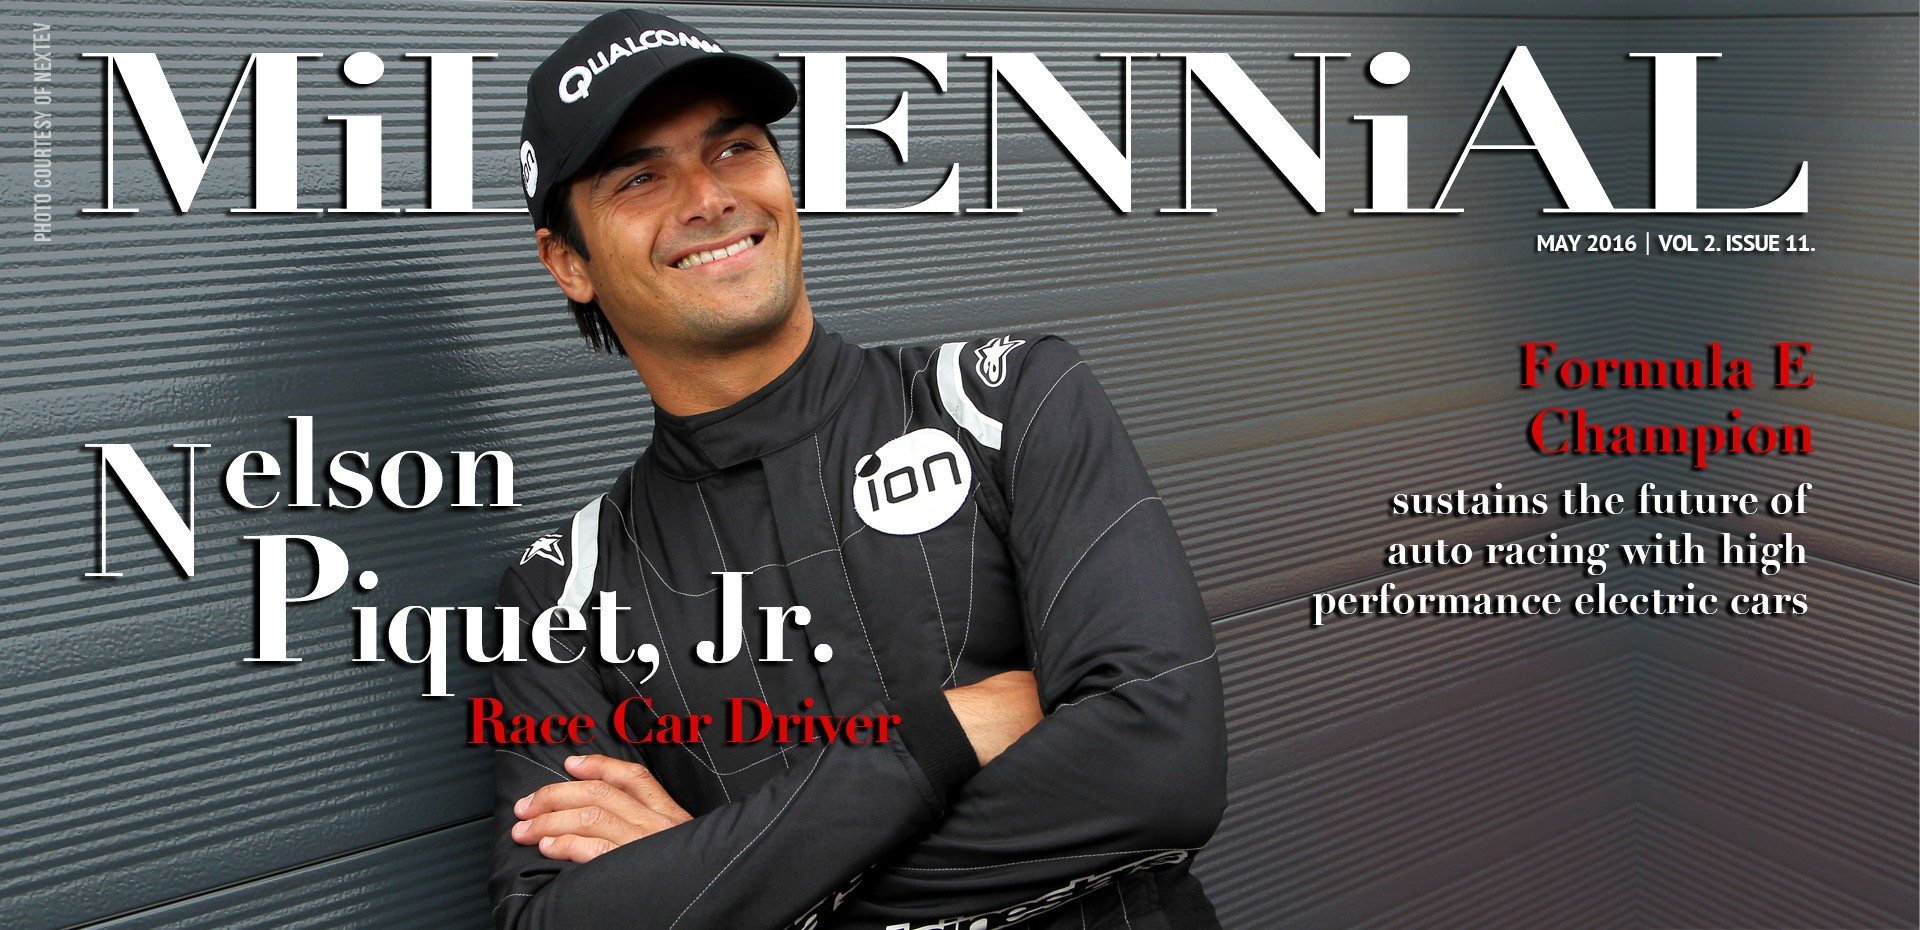 race-car-driver-nelson-piquet-jr-dominates-formula-e